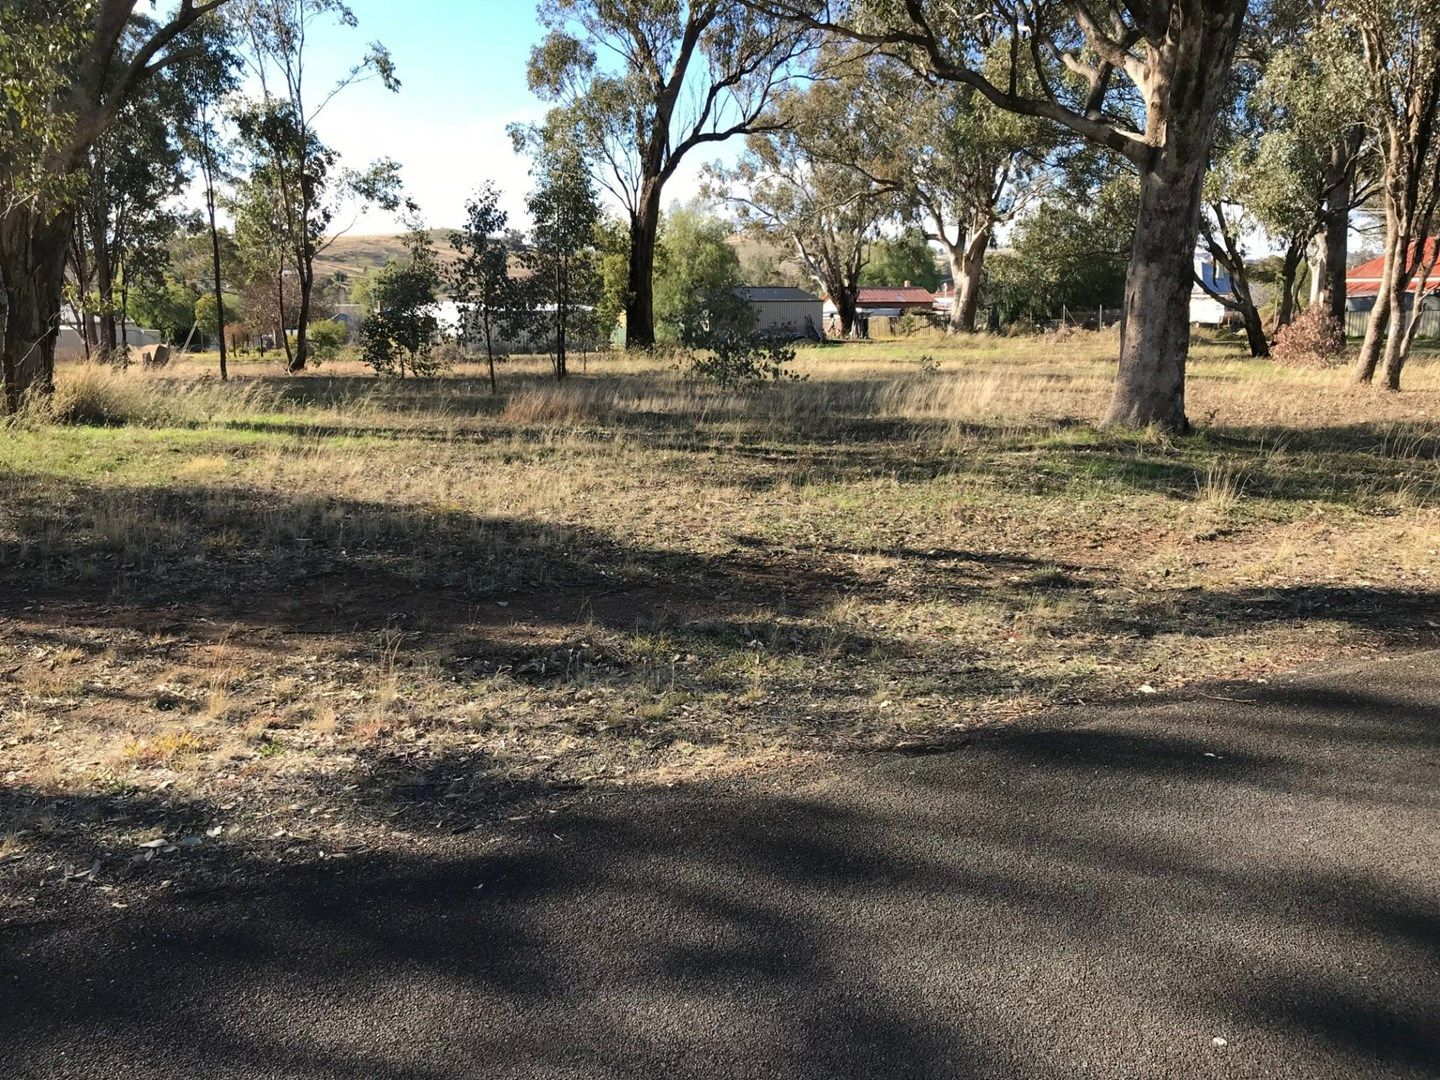 Lot 8 Belmore Street, Woodstock NSW 2793, Image 0